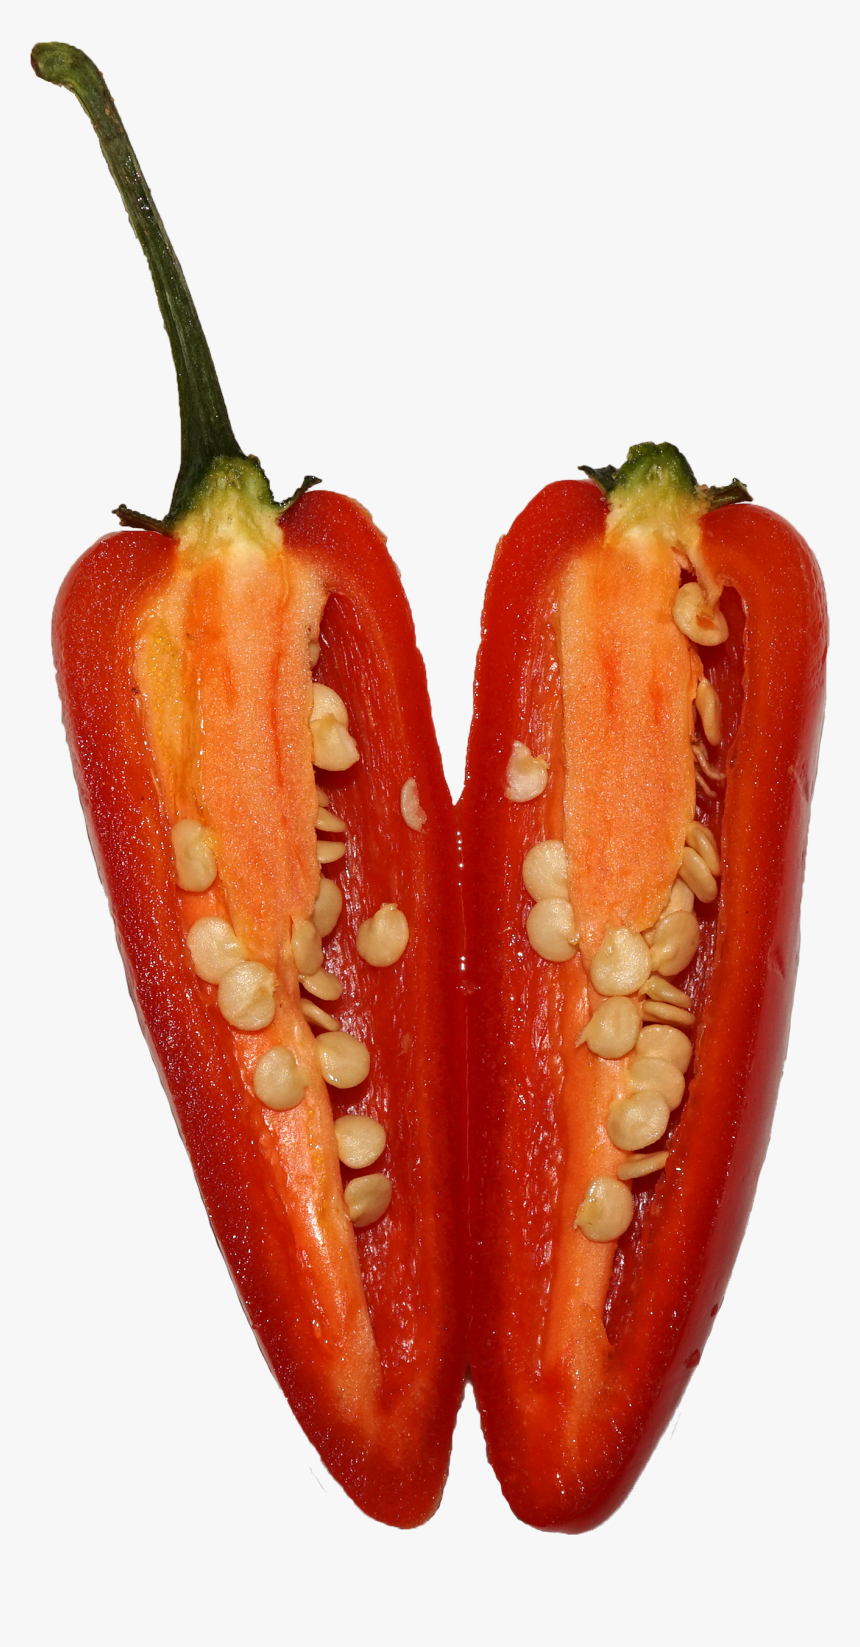 Chili Peppers And Chili Peppers,natural Foods,bell - Red Bell Pepper, HD Png Download, Free Download